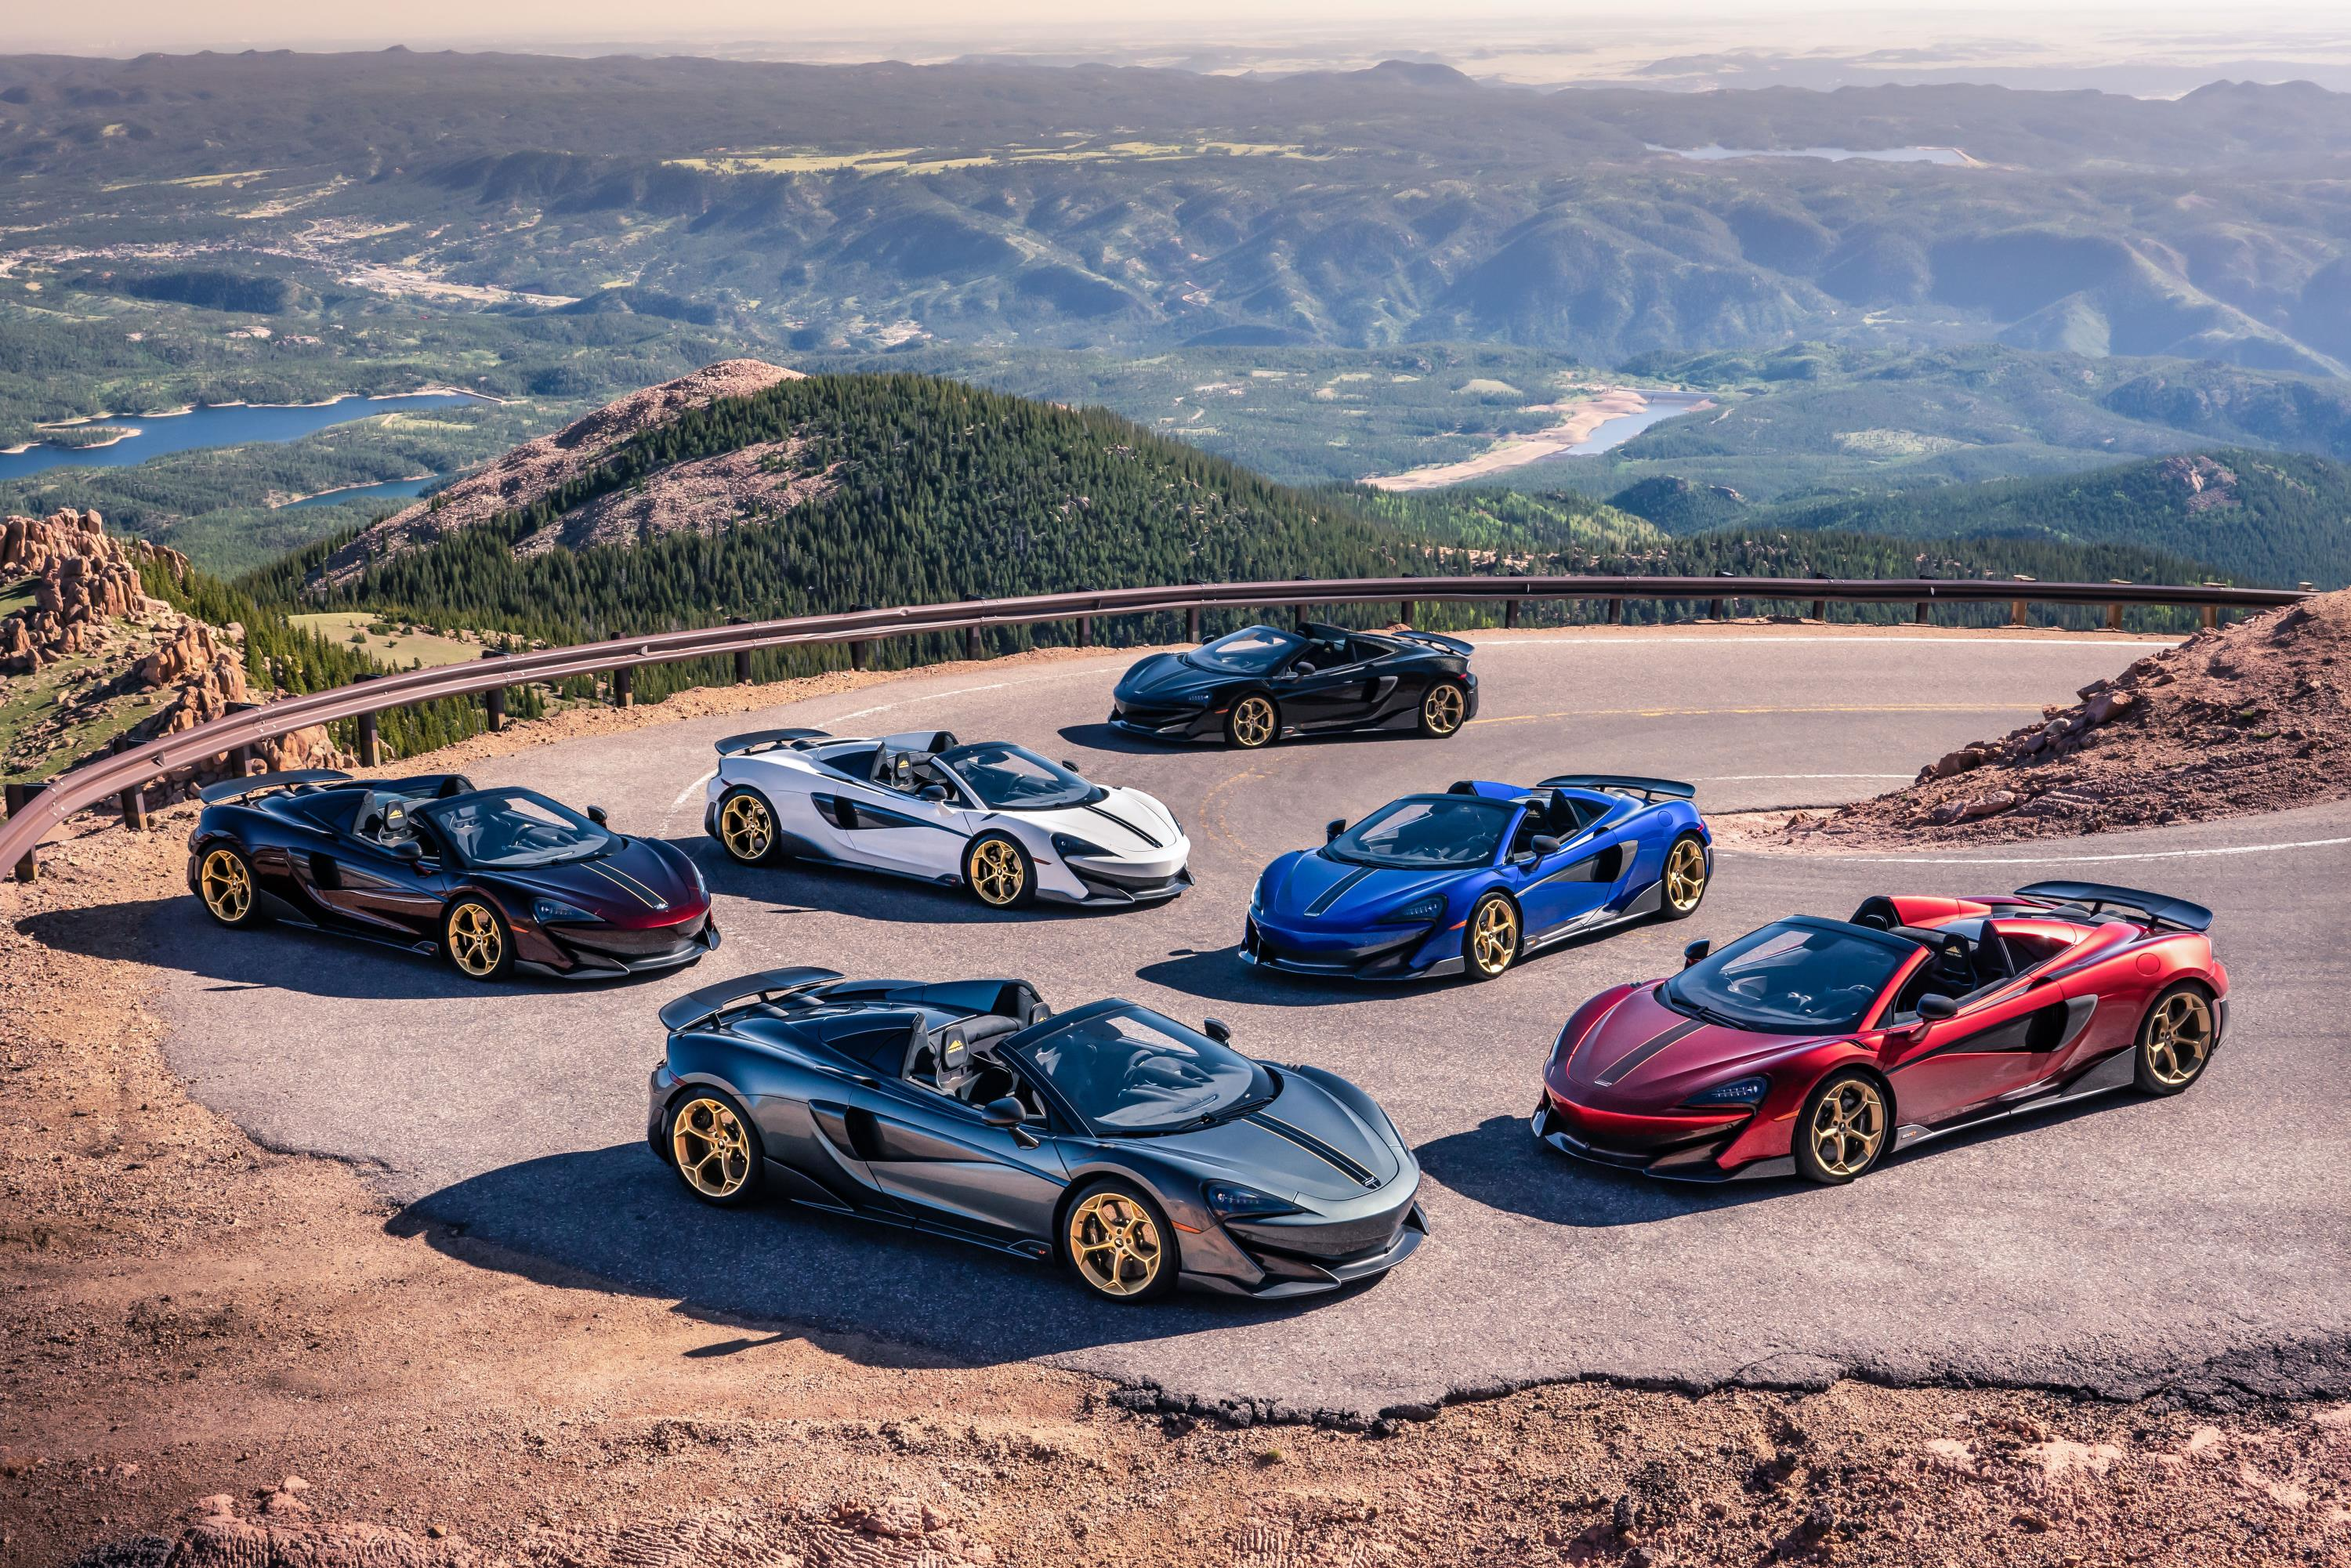 Pikes Peak Collection 600LT Spiders